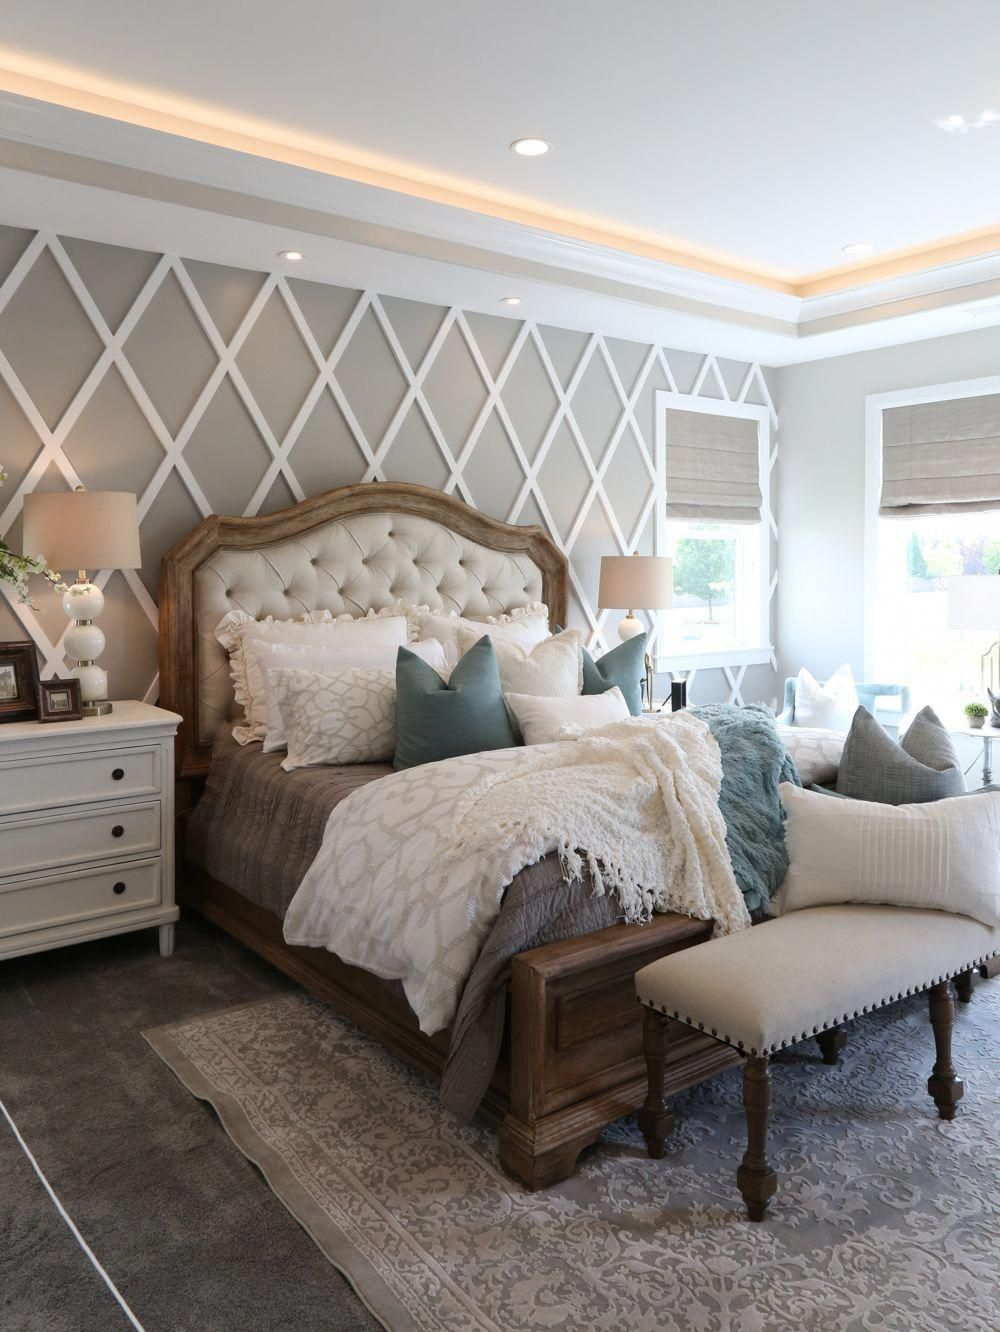 Bedroom Ideas Wonderfully Plushy Plans In 2020 Country Bedroom Decor French Country Decorating Bedroom Master Bedrooms Decor